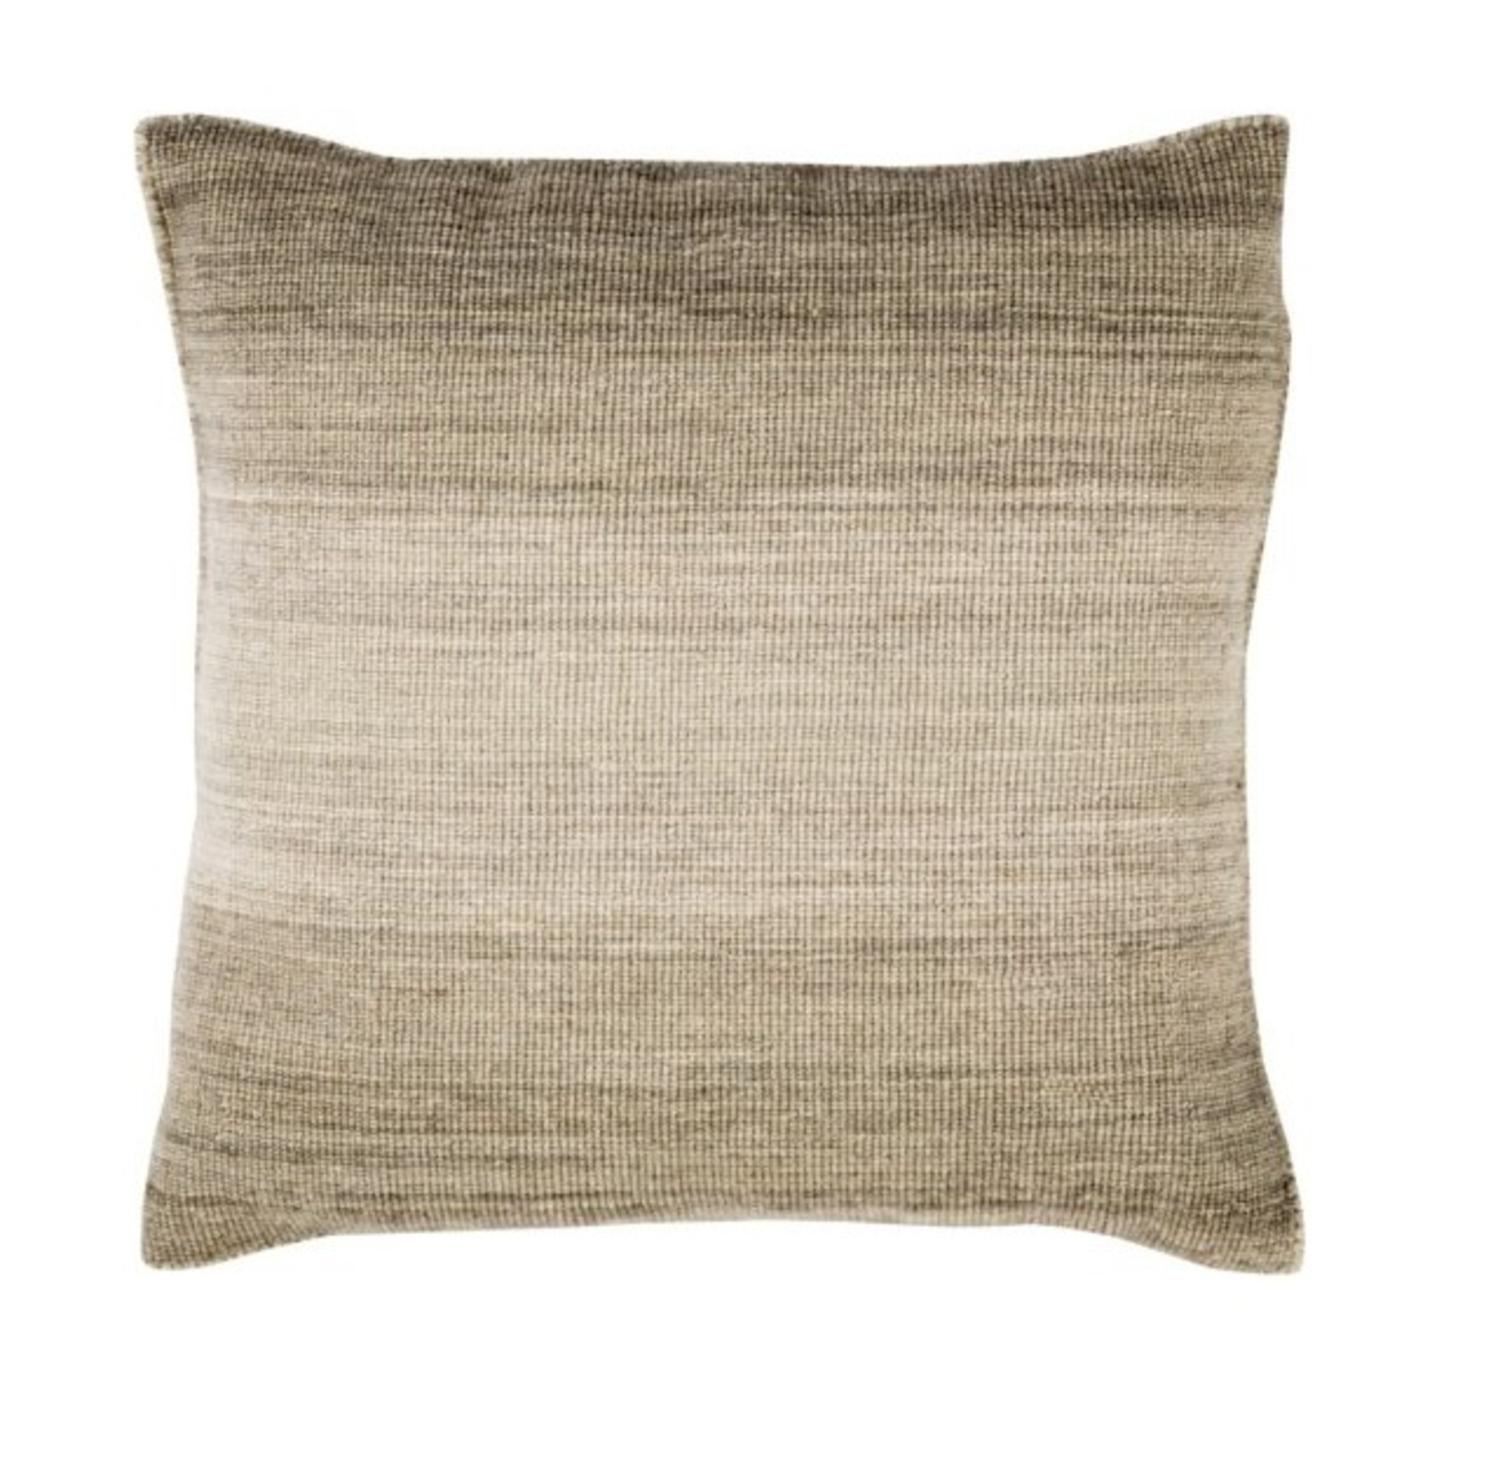 """20"""" Ombre Ambience Coyote Brown, Eggshell and Otter Brown Decorative Throw Pillow"""